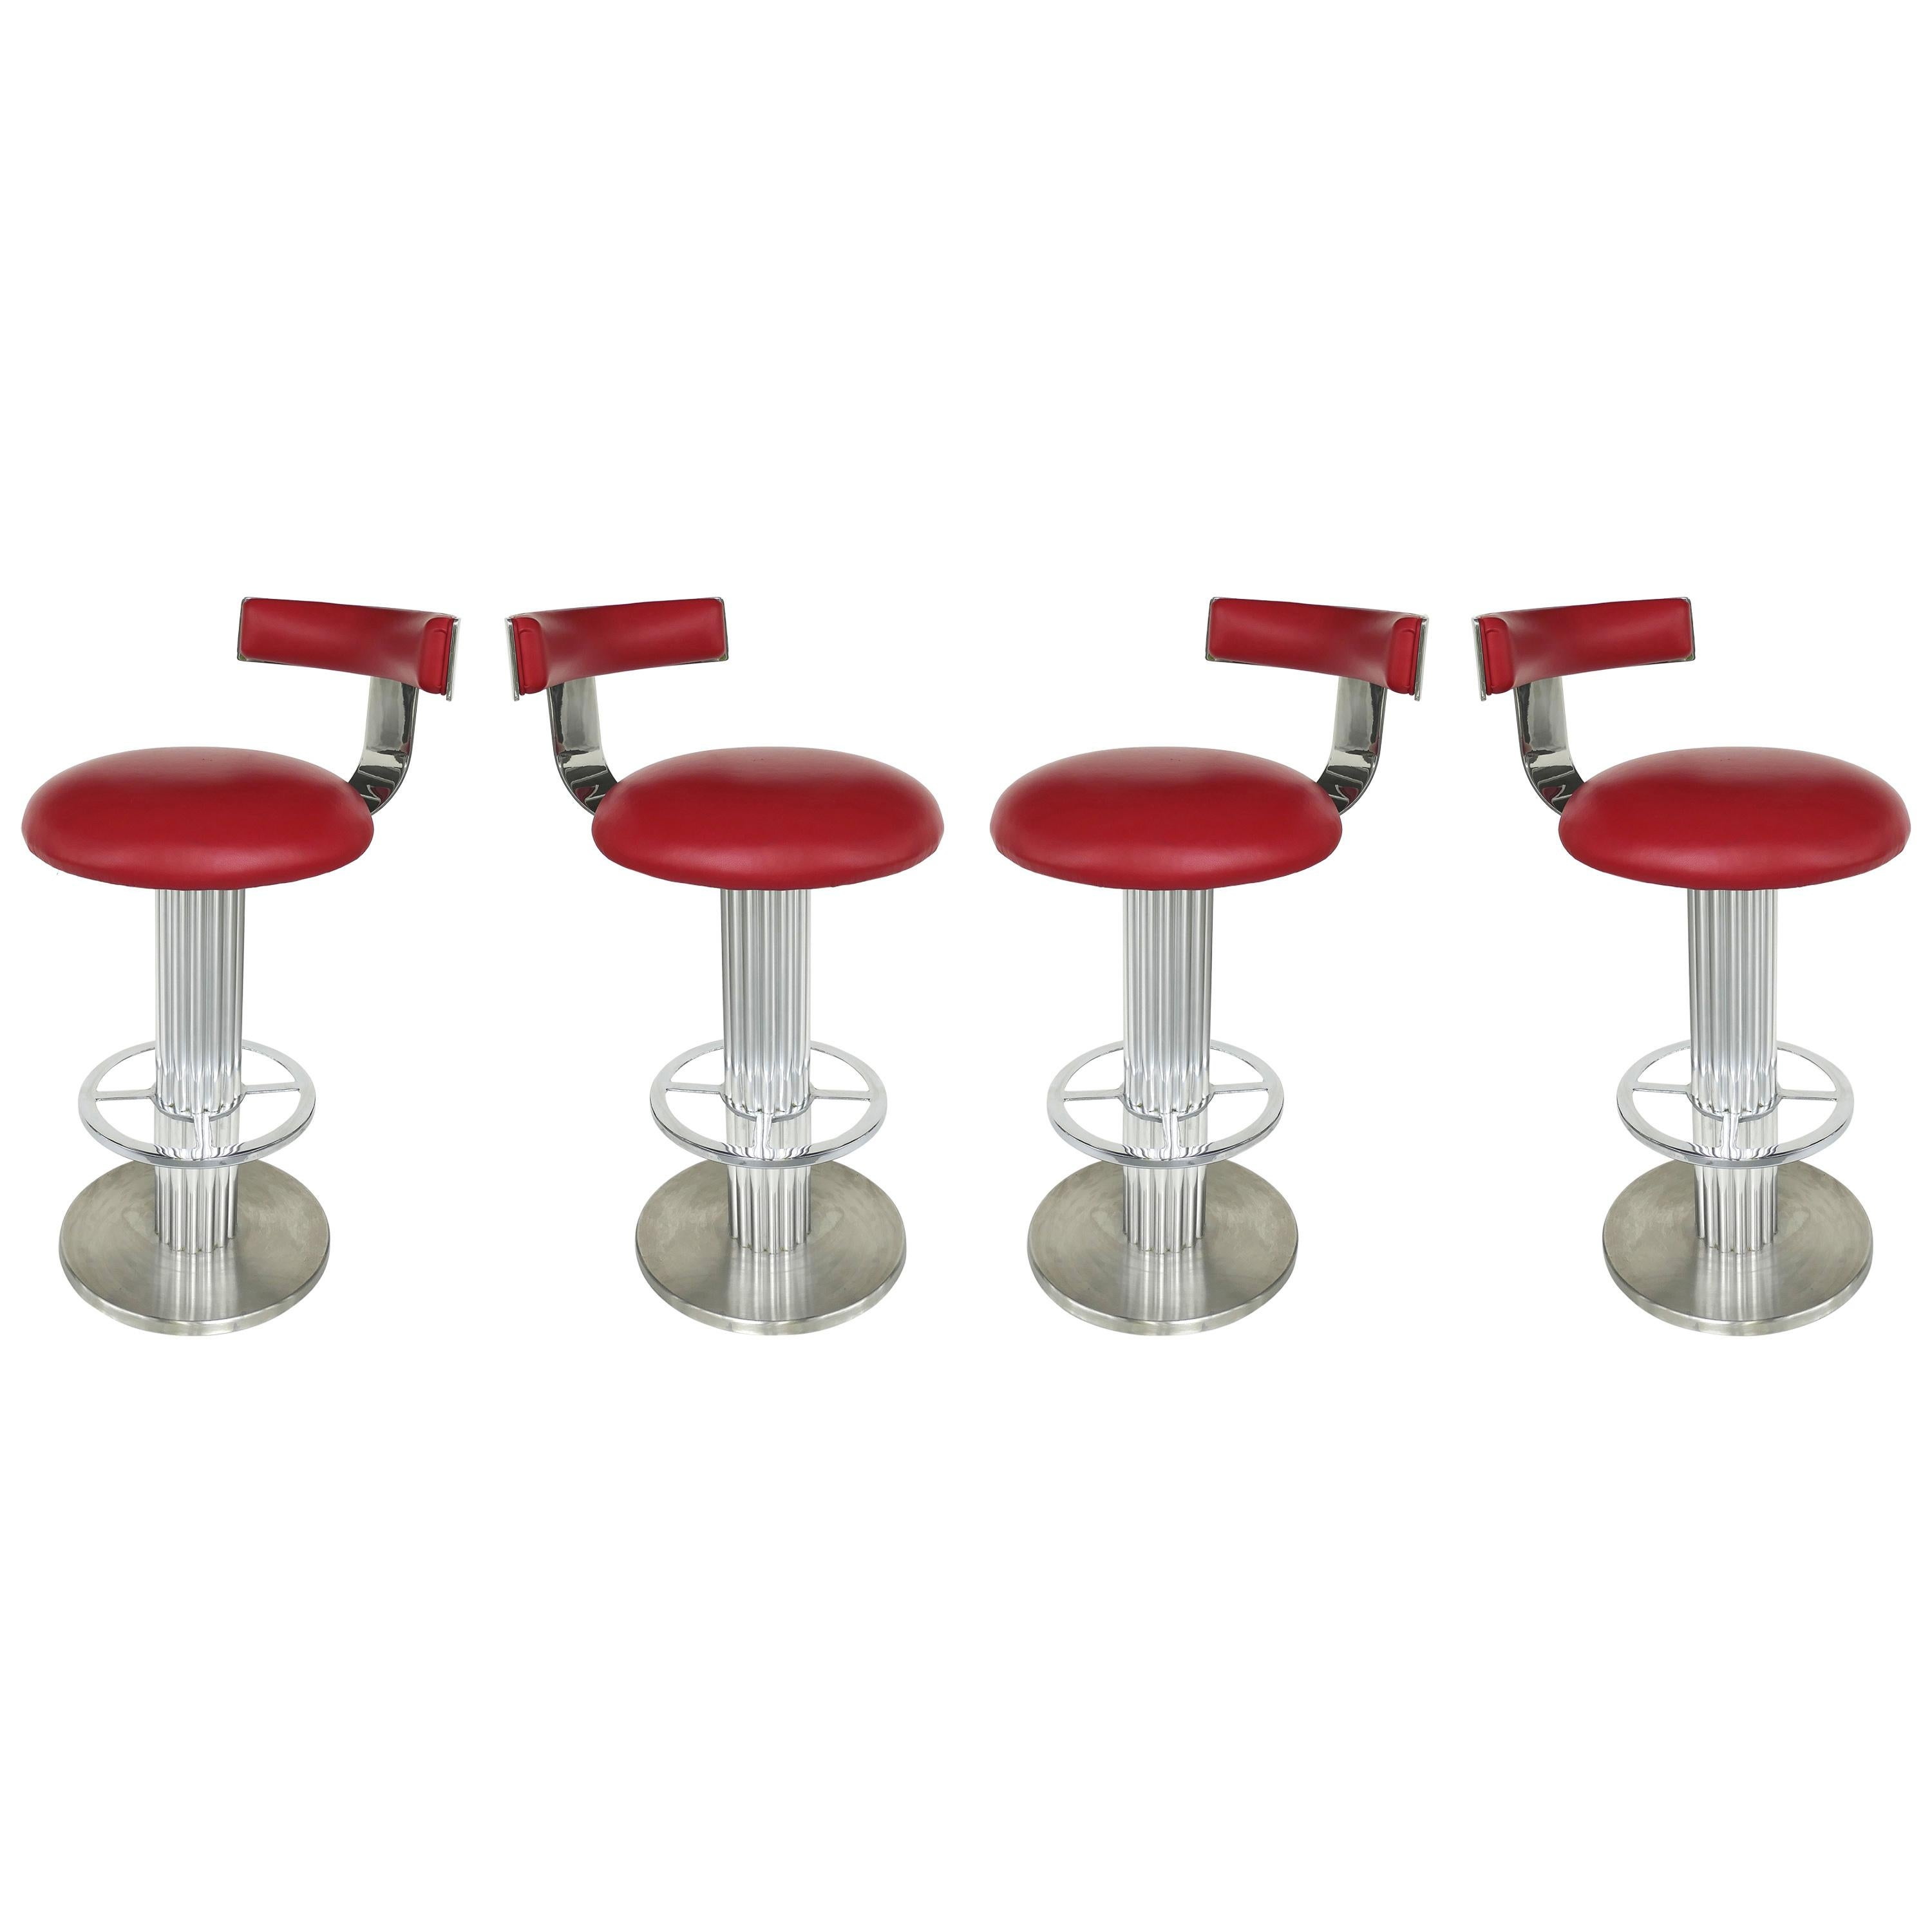 Design for Leisure Stainless and Leather Bar Stools, Set of 4 Swivel Stools